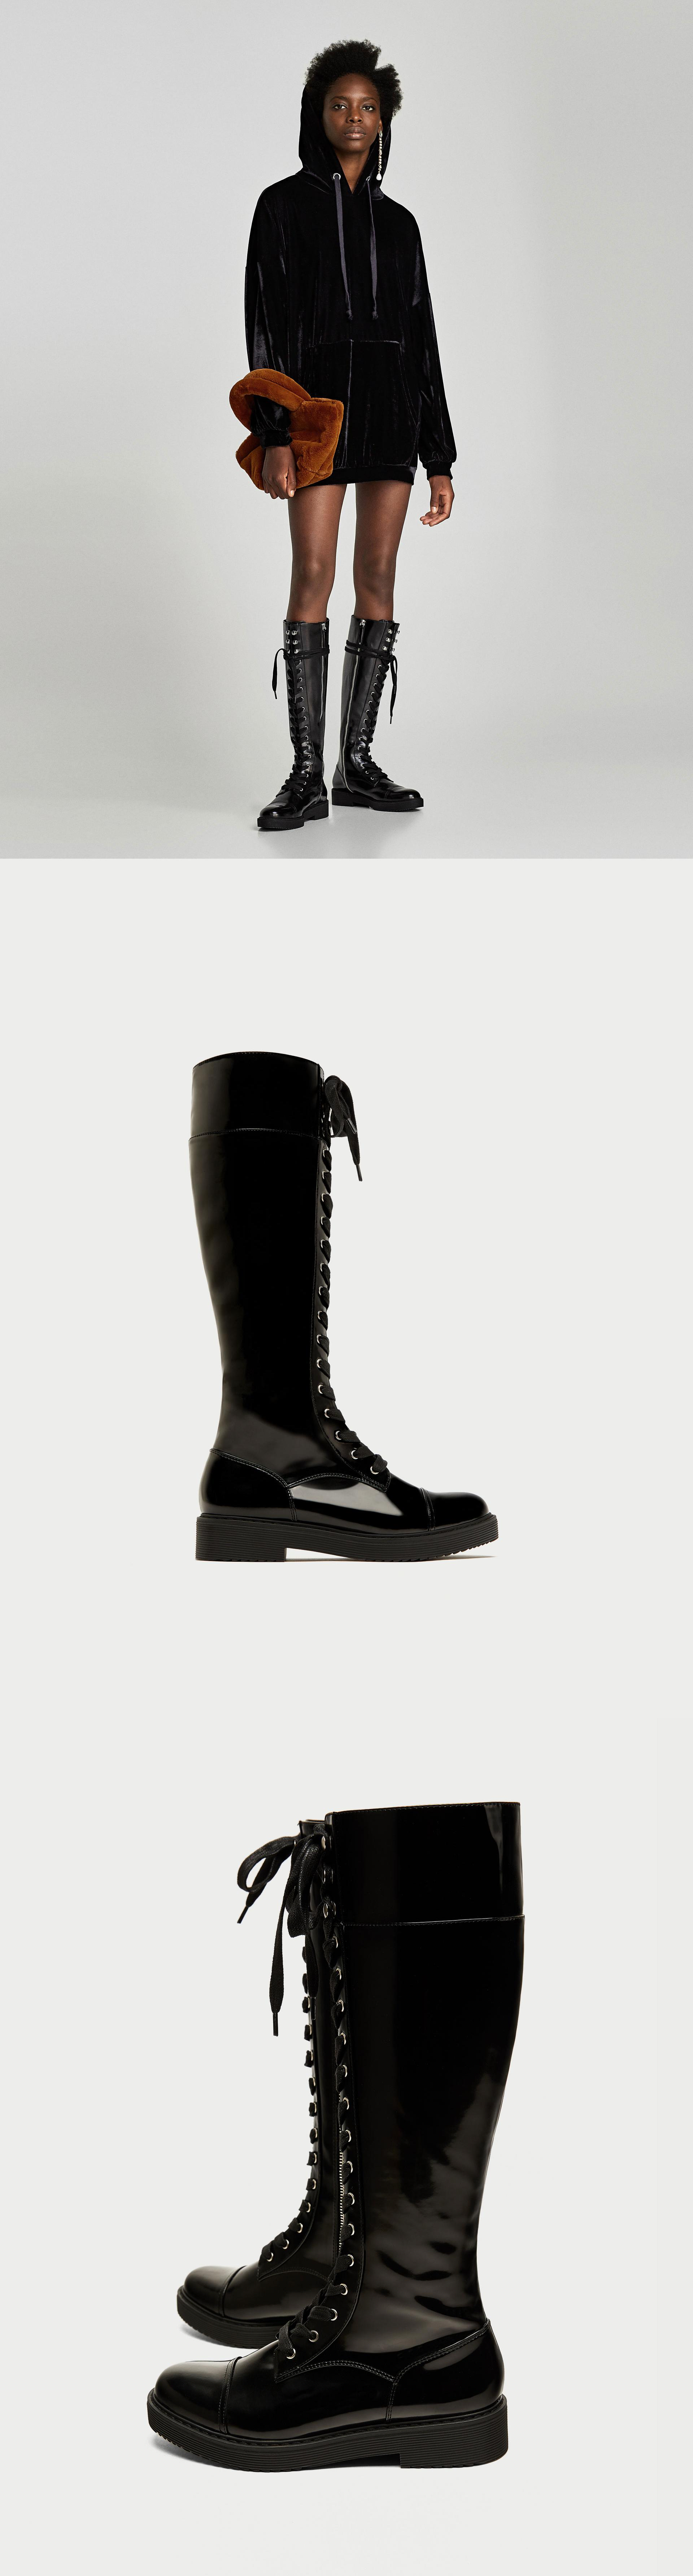 Lace Up Flat Over The Knee Boots 89 90 Usd Zara Flat Tall Military Boots In Black With Lace Up Fas Over The Knee Boots Zara Fashion 2017 Lace Up Flat